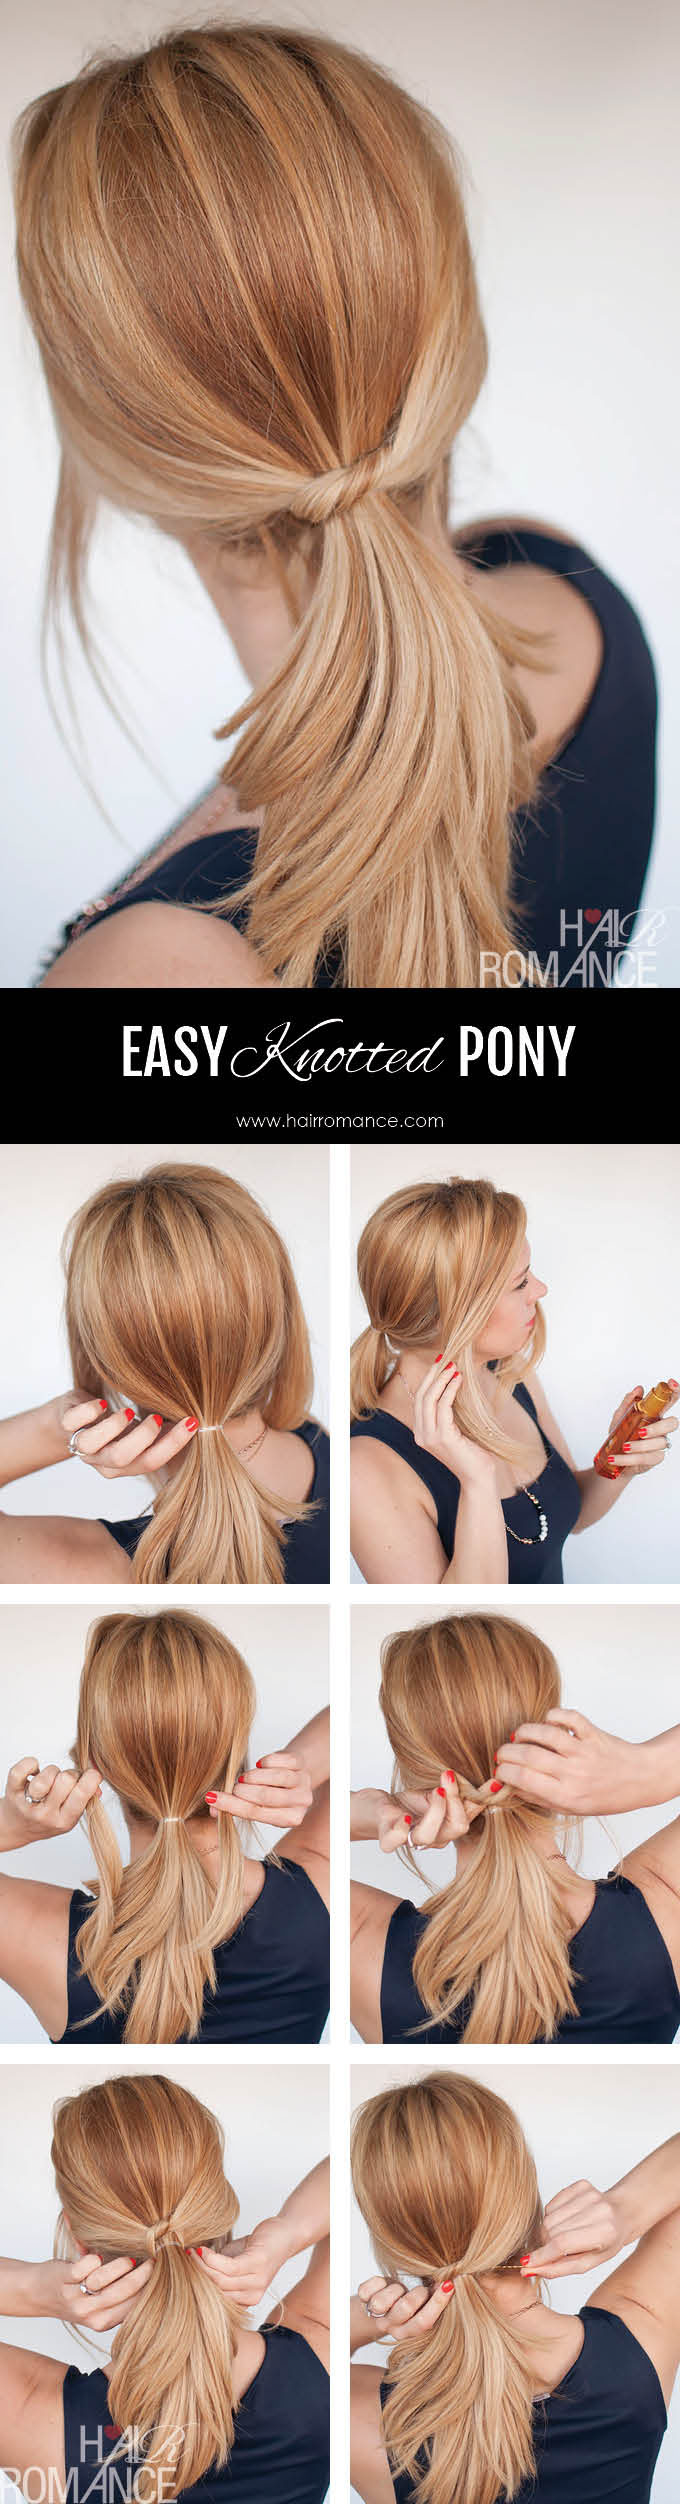 The-easy-knotted-ponytail-tutorial